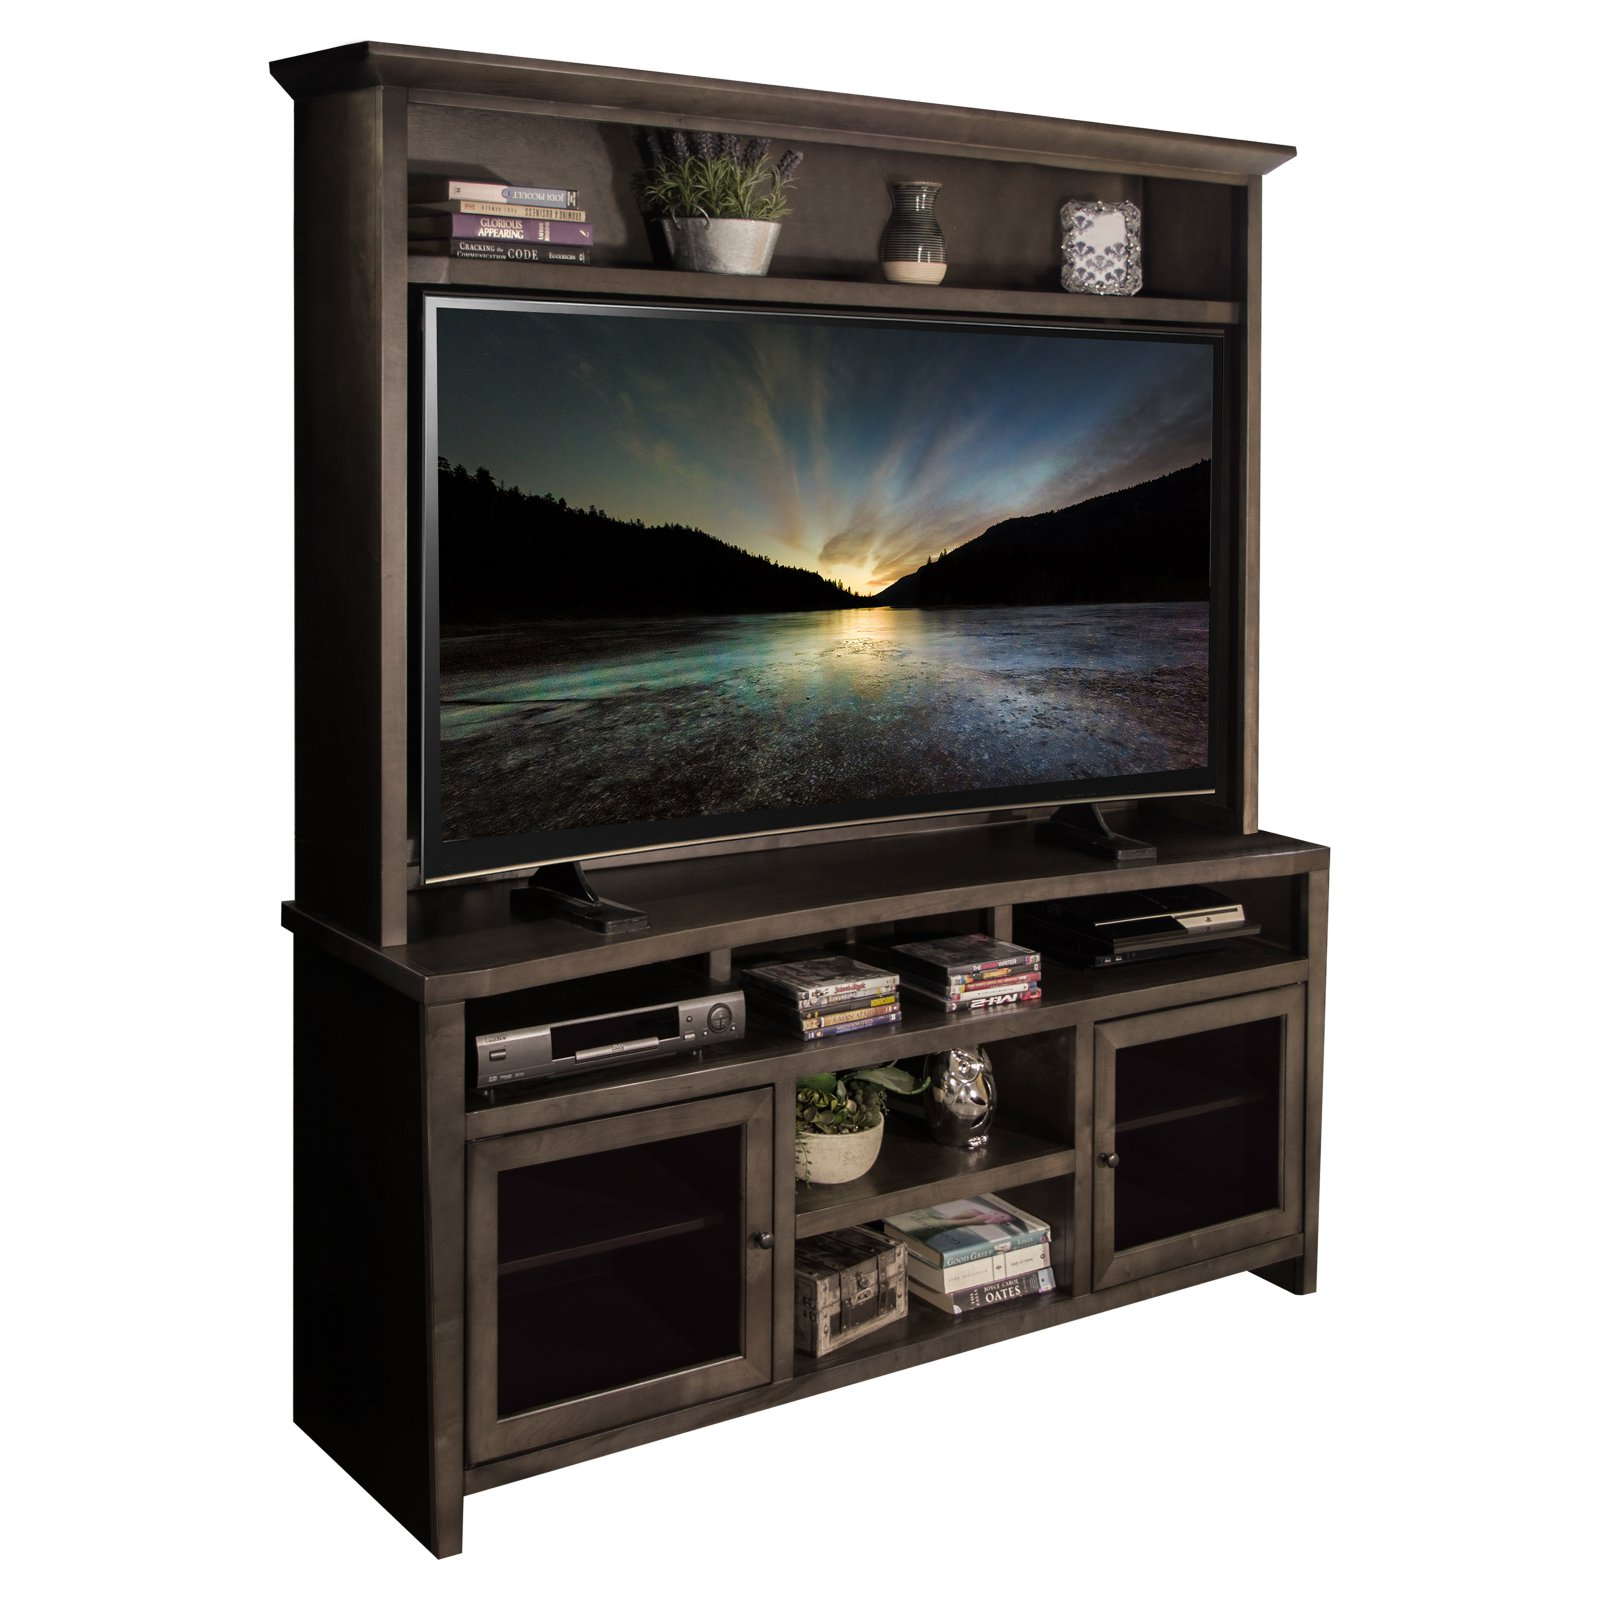 Legends Furniture Vox Curved TV Console with Optional Hutch